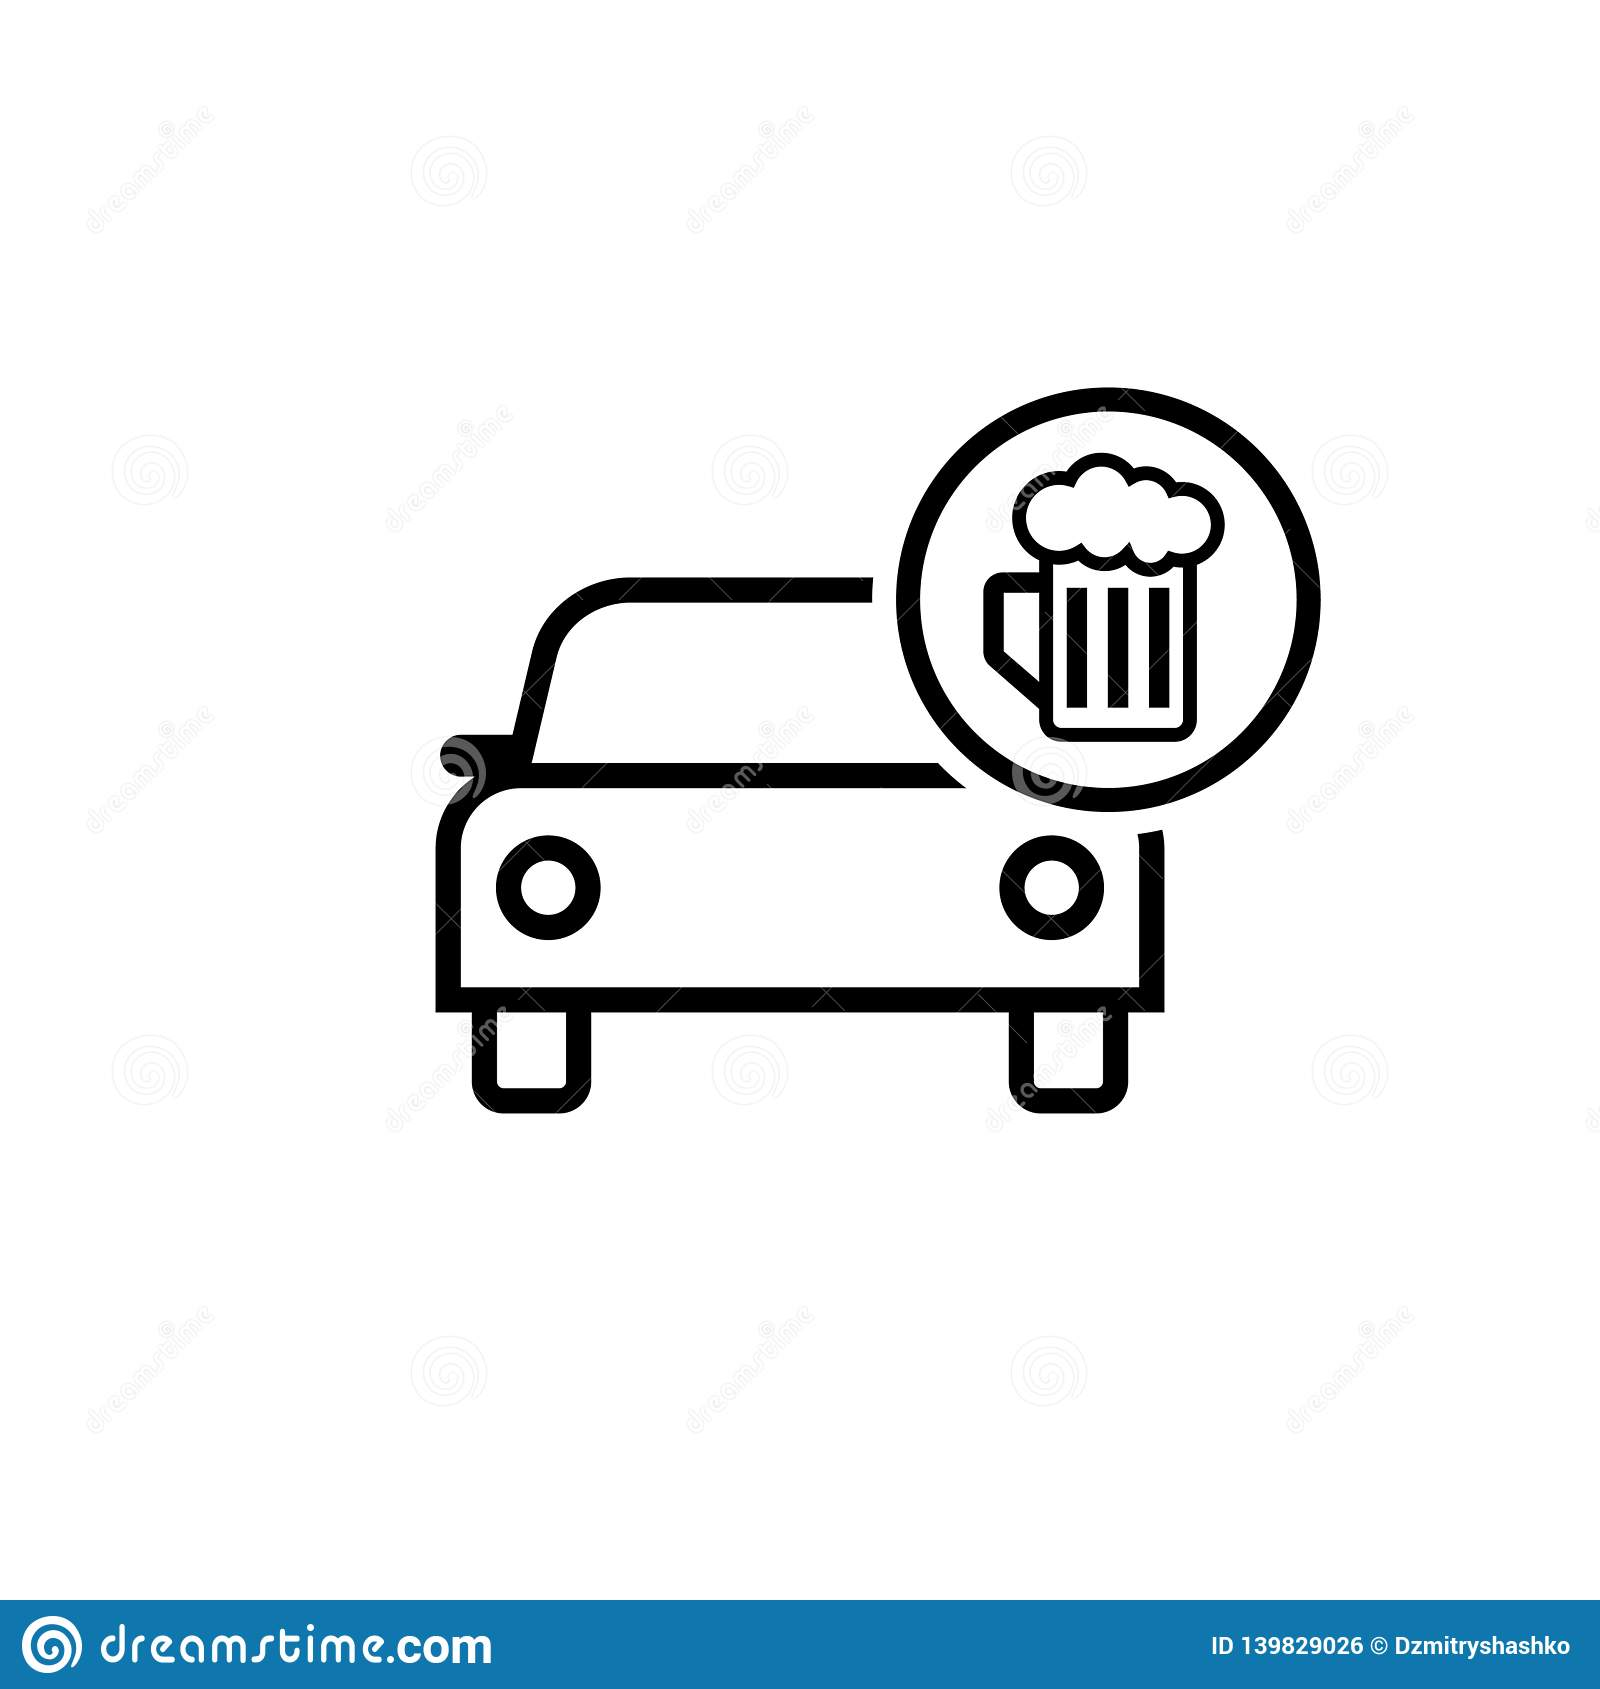 Drunk driving icon stock vector. Illustration of drink.